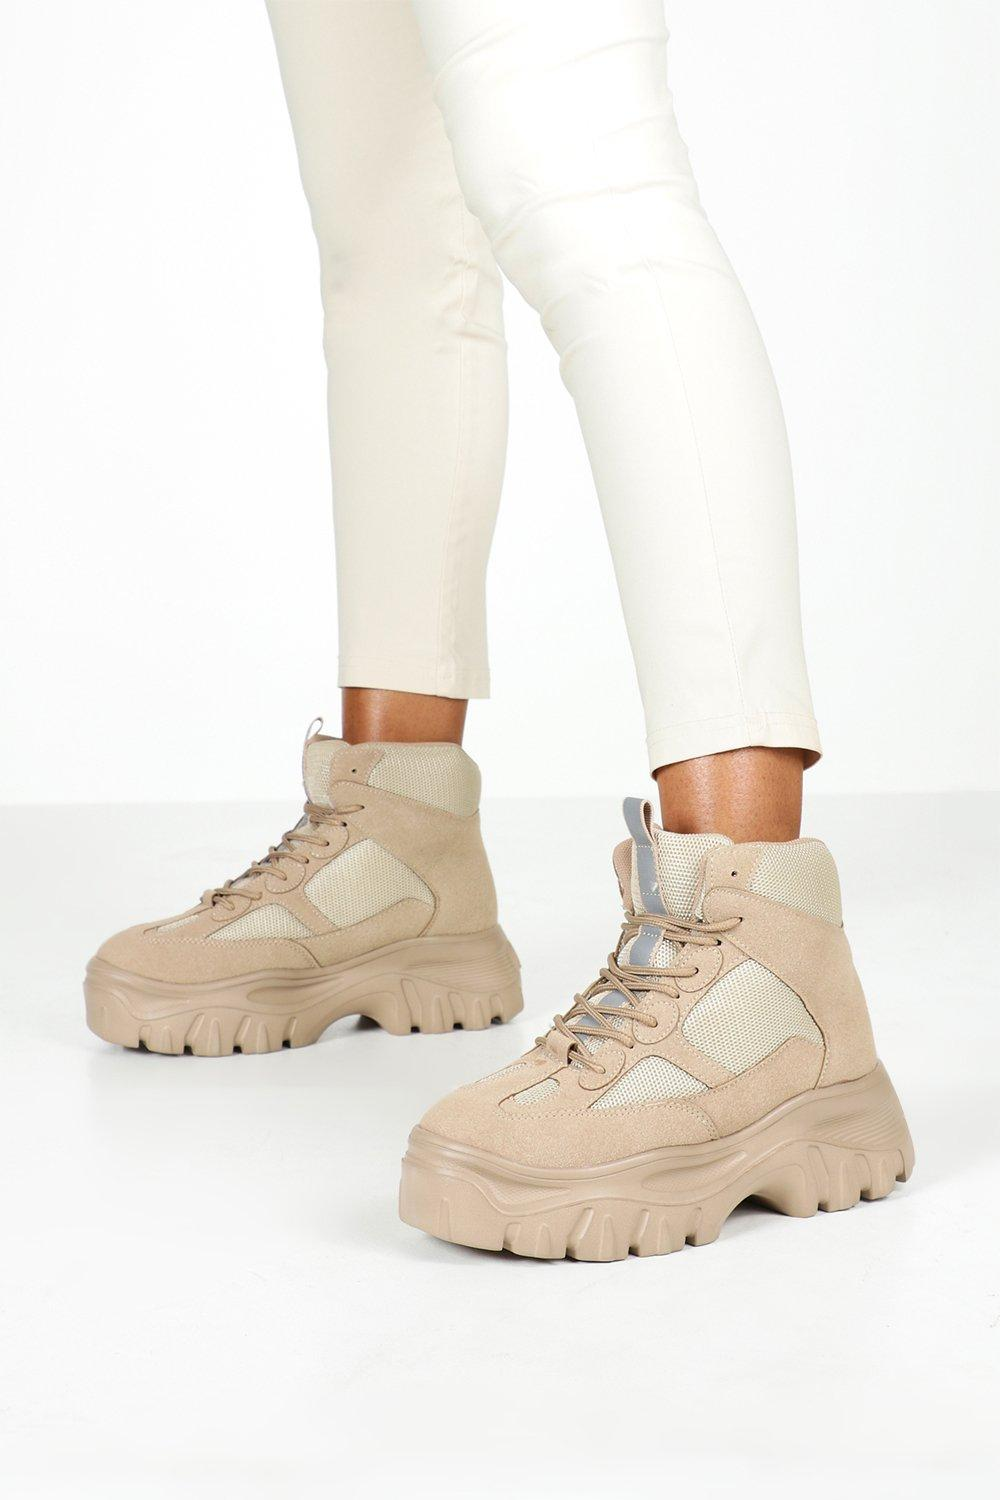 Festival Shoes Lace Up Chunky Platform Hiker Trainers